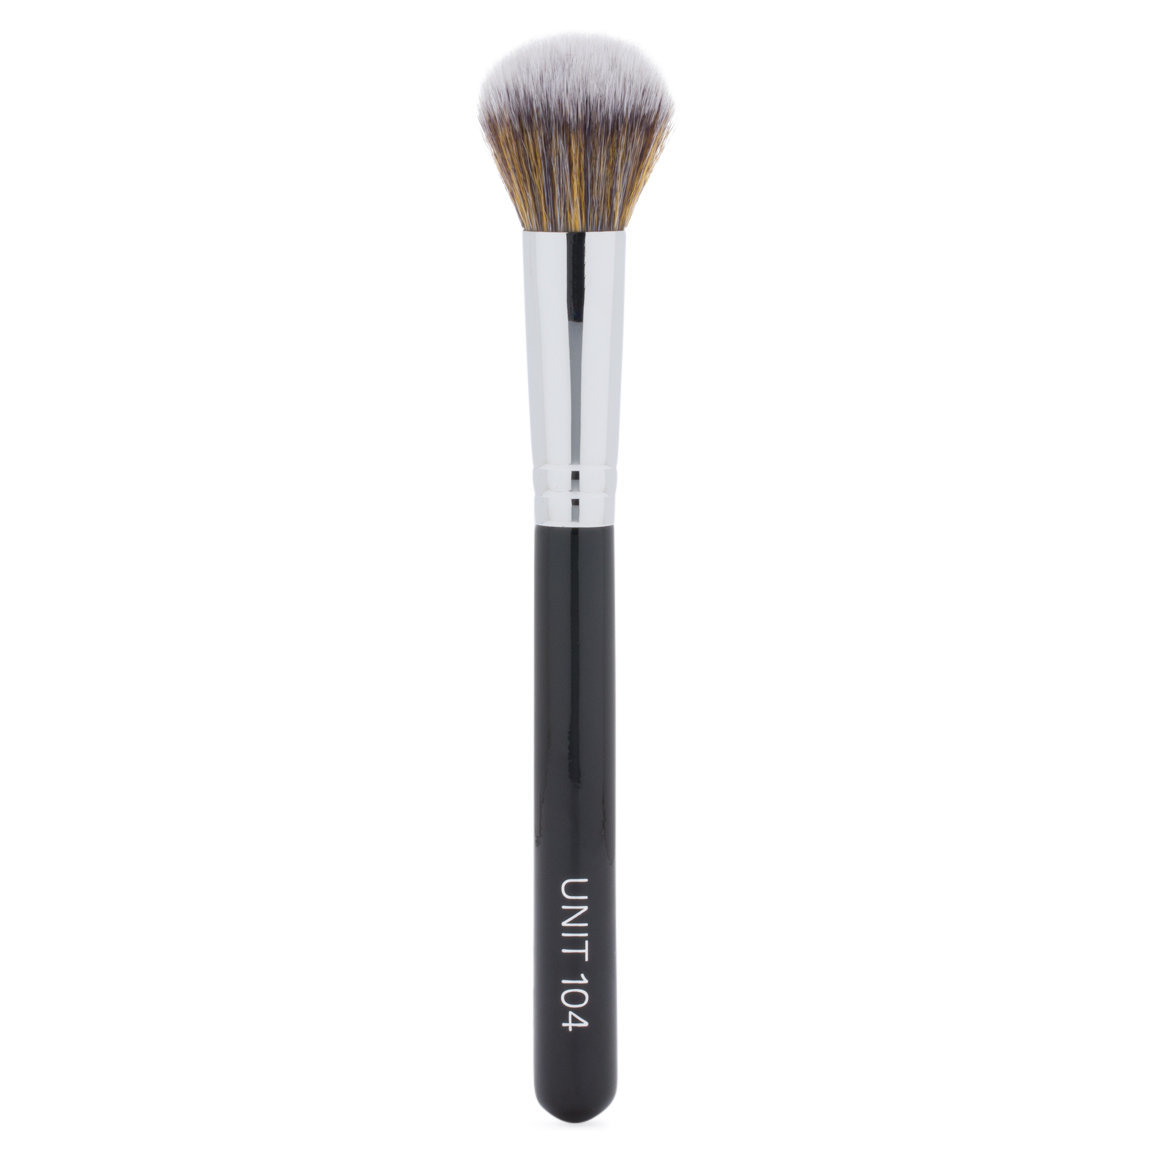 UNITS UNIT 104 Powder Brush alternative view 1 - product swatch.